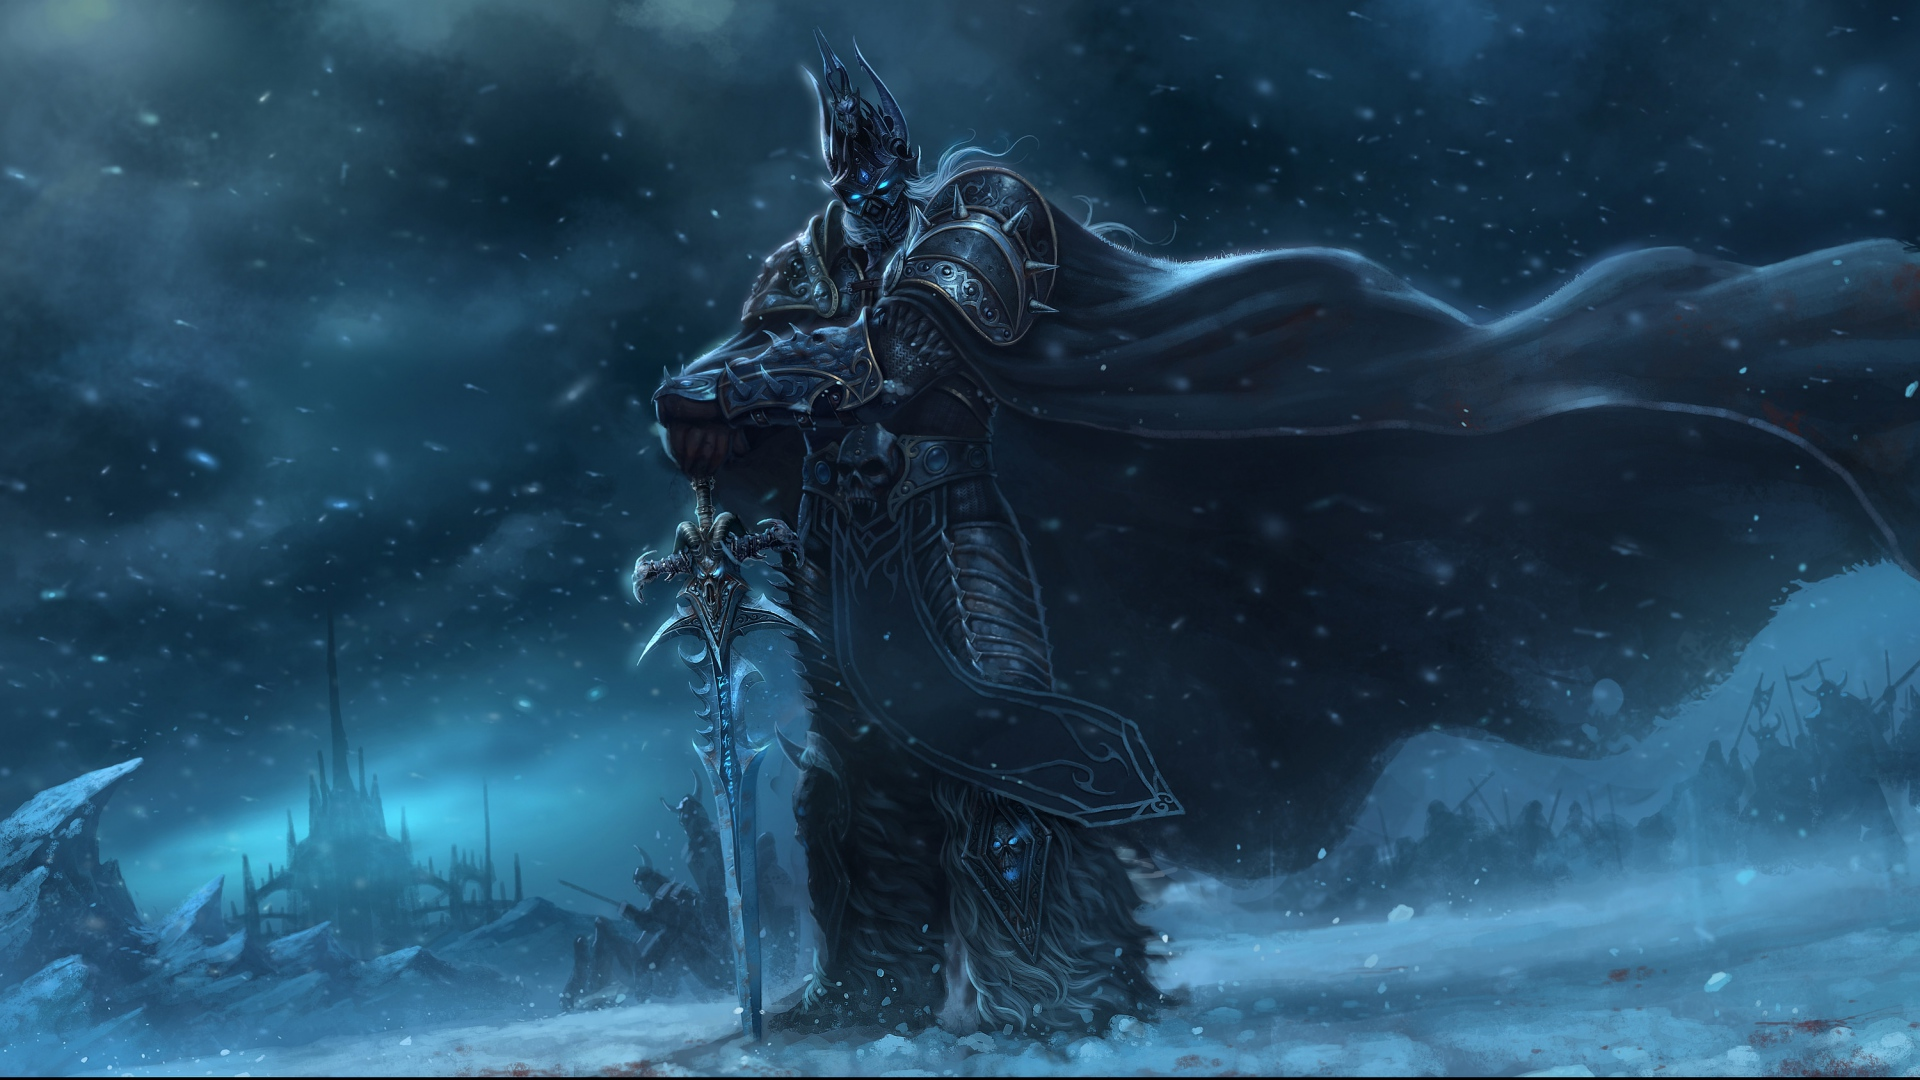 World Of Warcraft HD Wallpapers  Backgrounds  Wallpaper  1920x1080